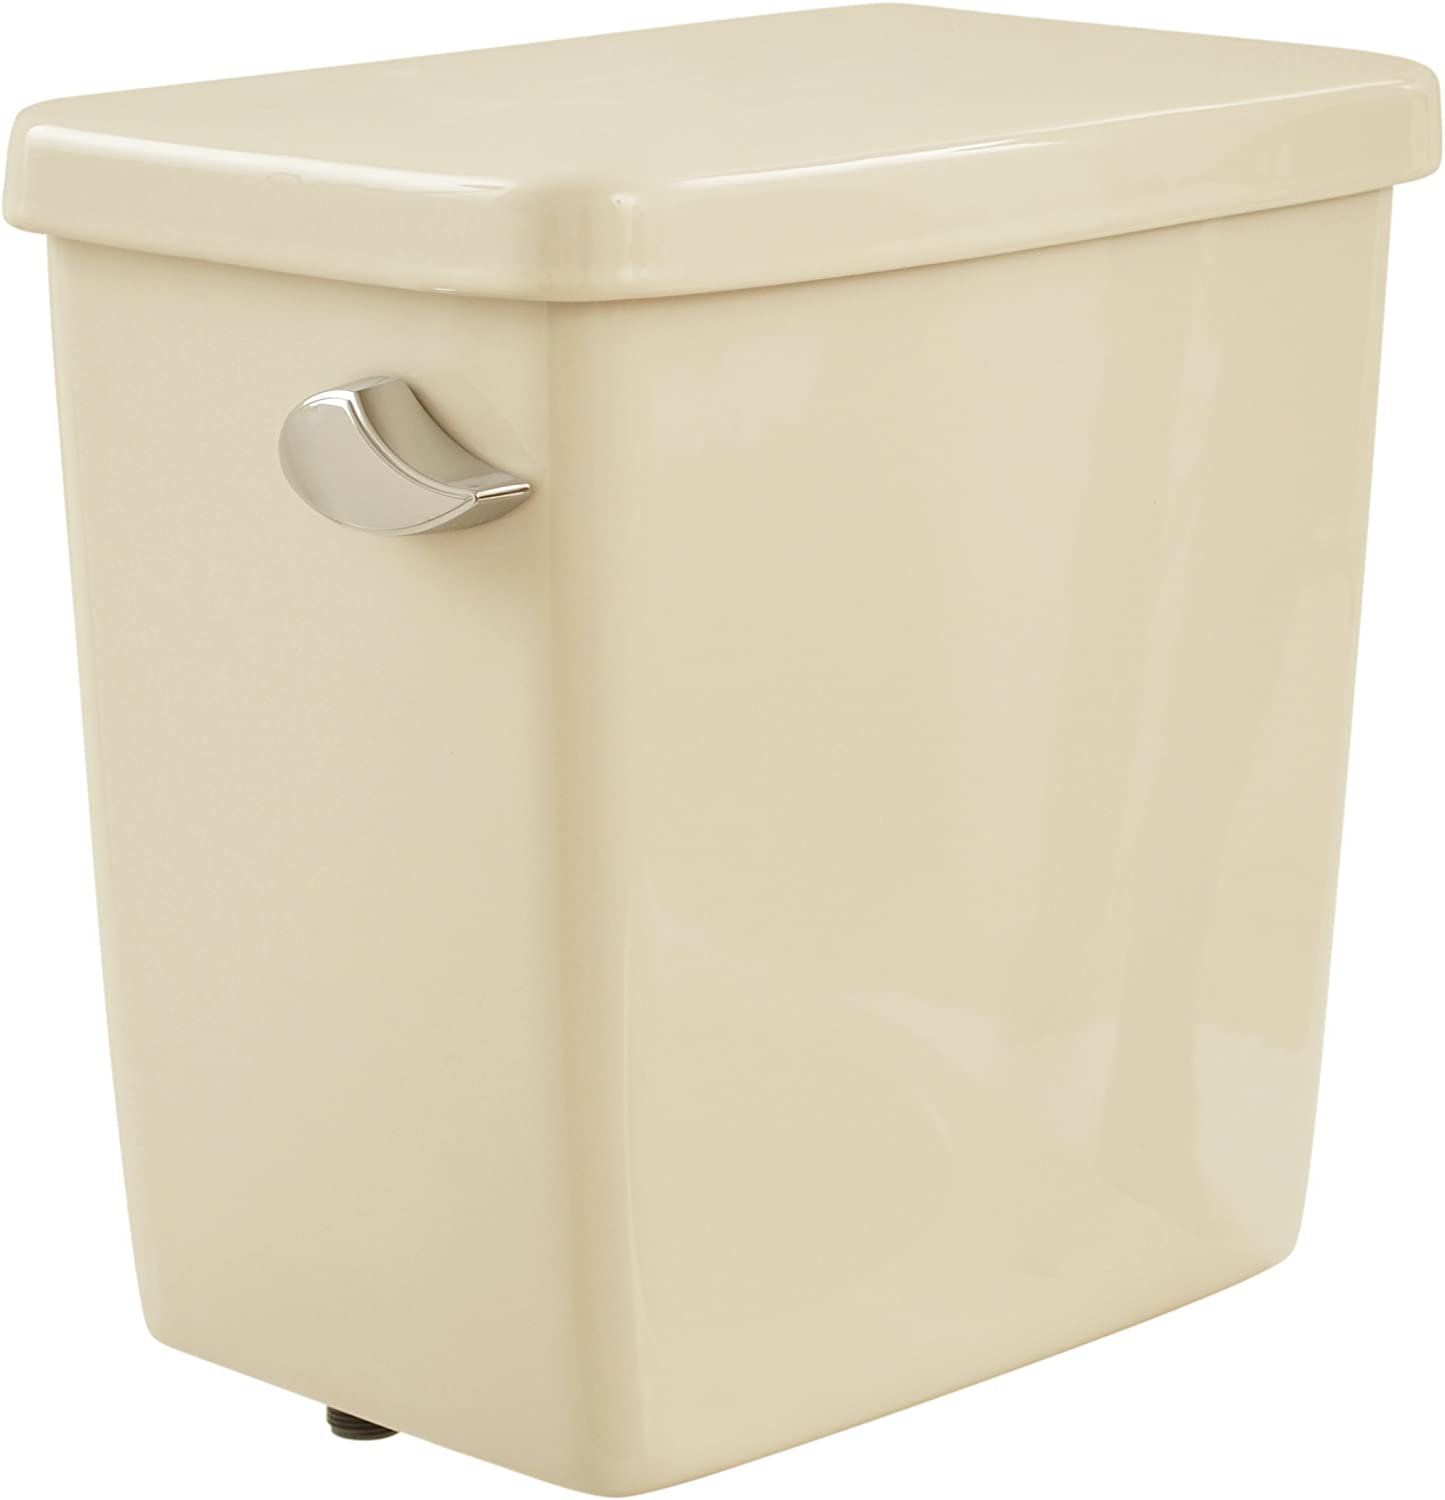 TOTO ST701-03 favorite Tank with 1.6 Max 55% OFF Bone System O Flushing Gallon